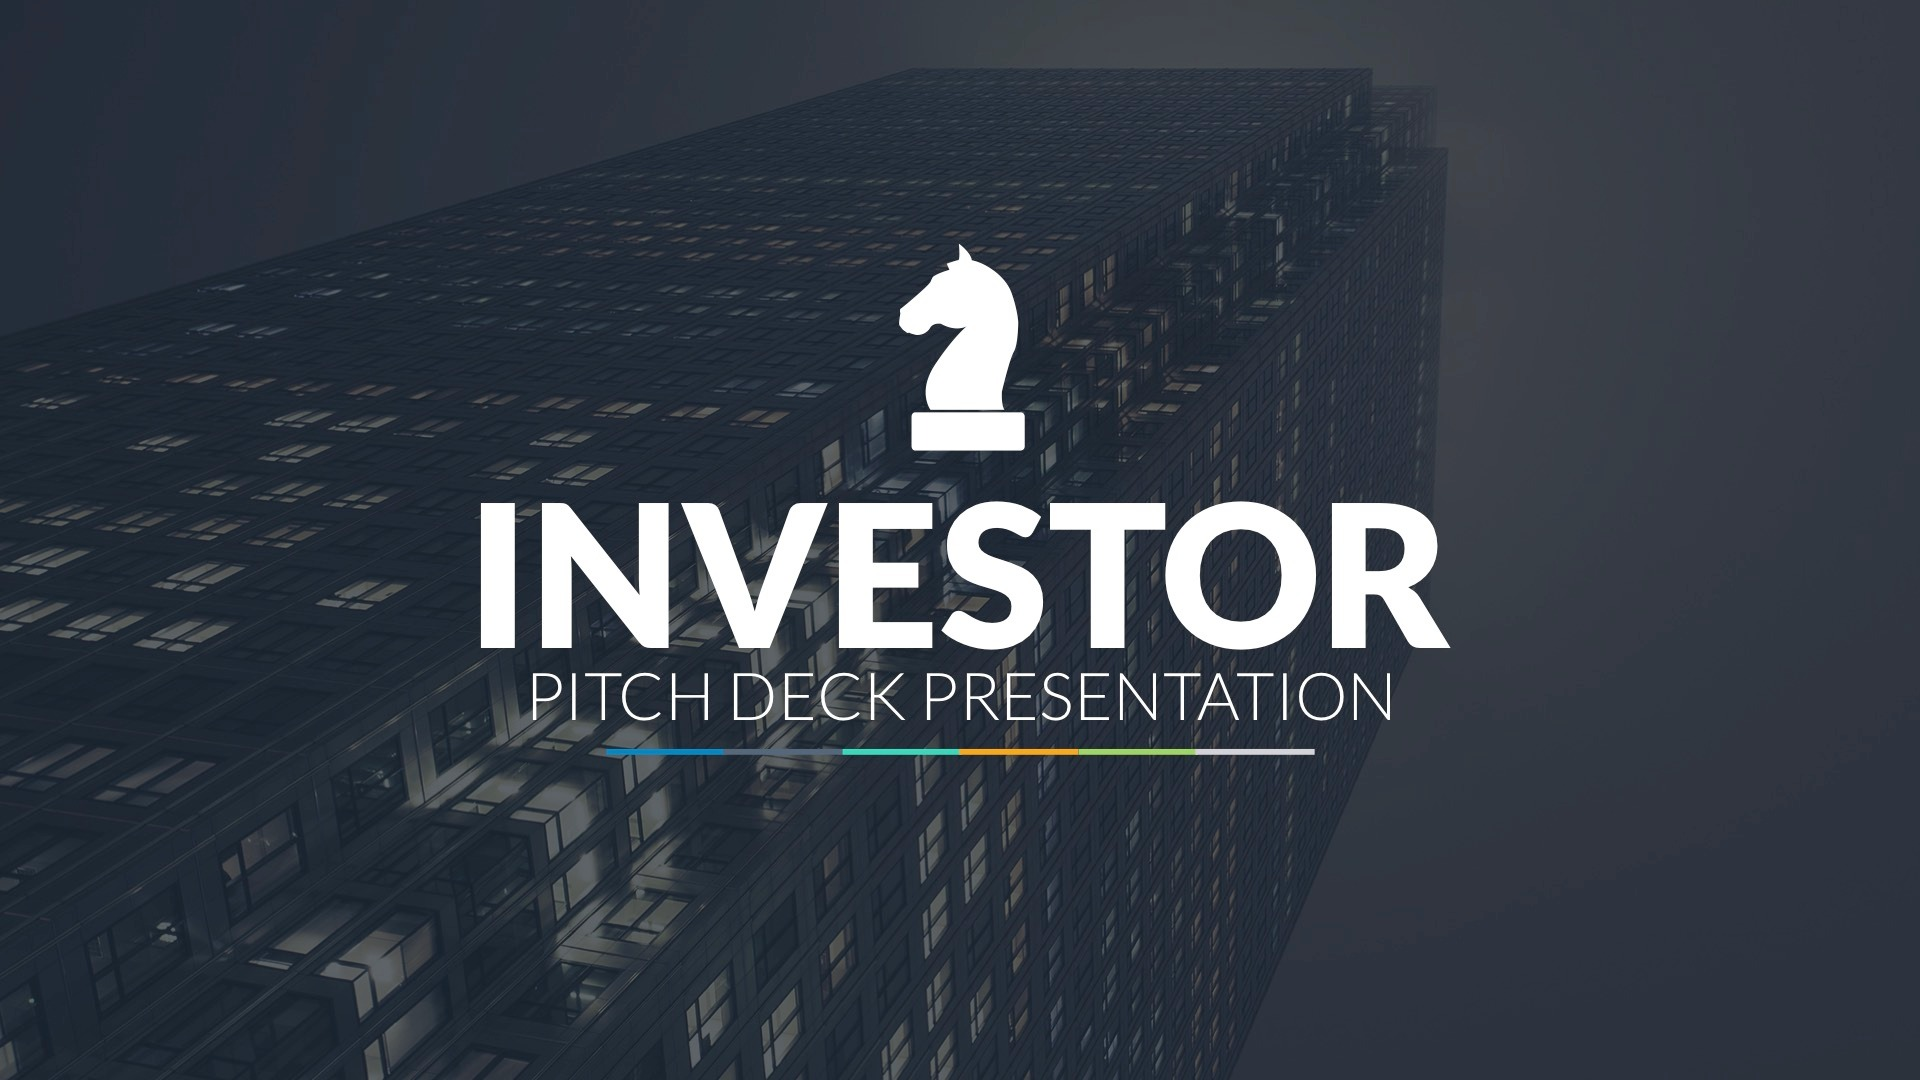 Investor Pitch Deck Powerpoint Template By Louistwelve